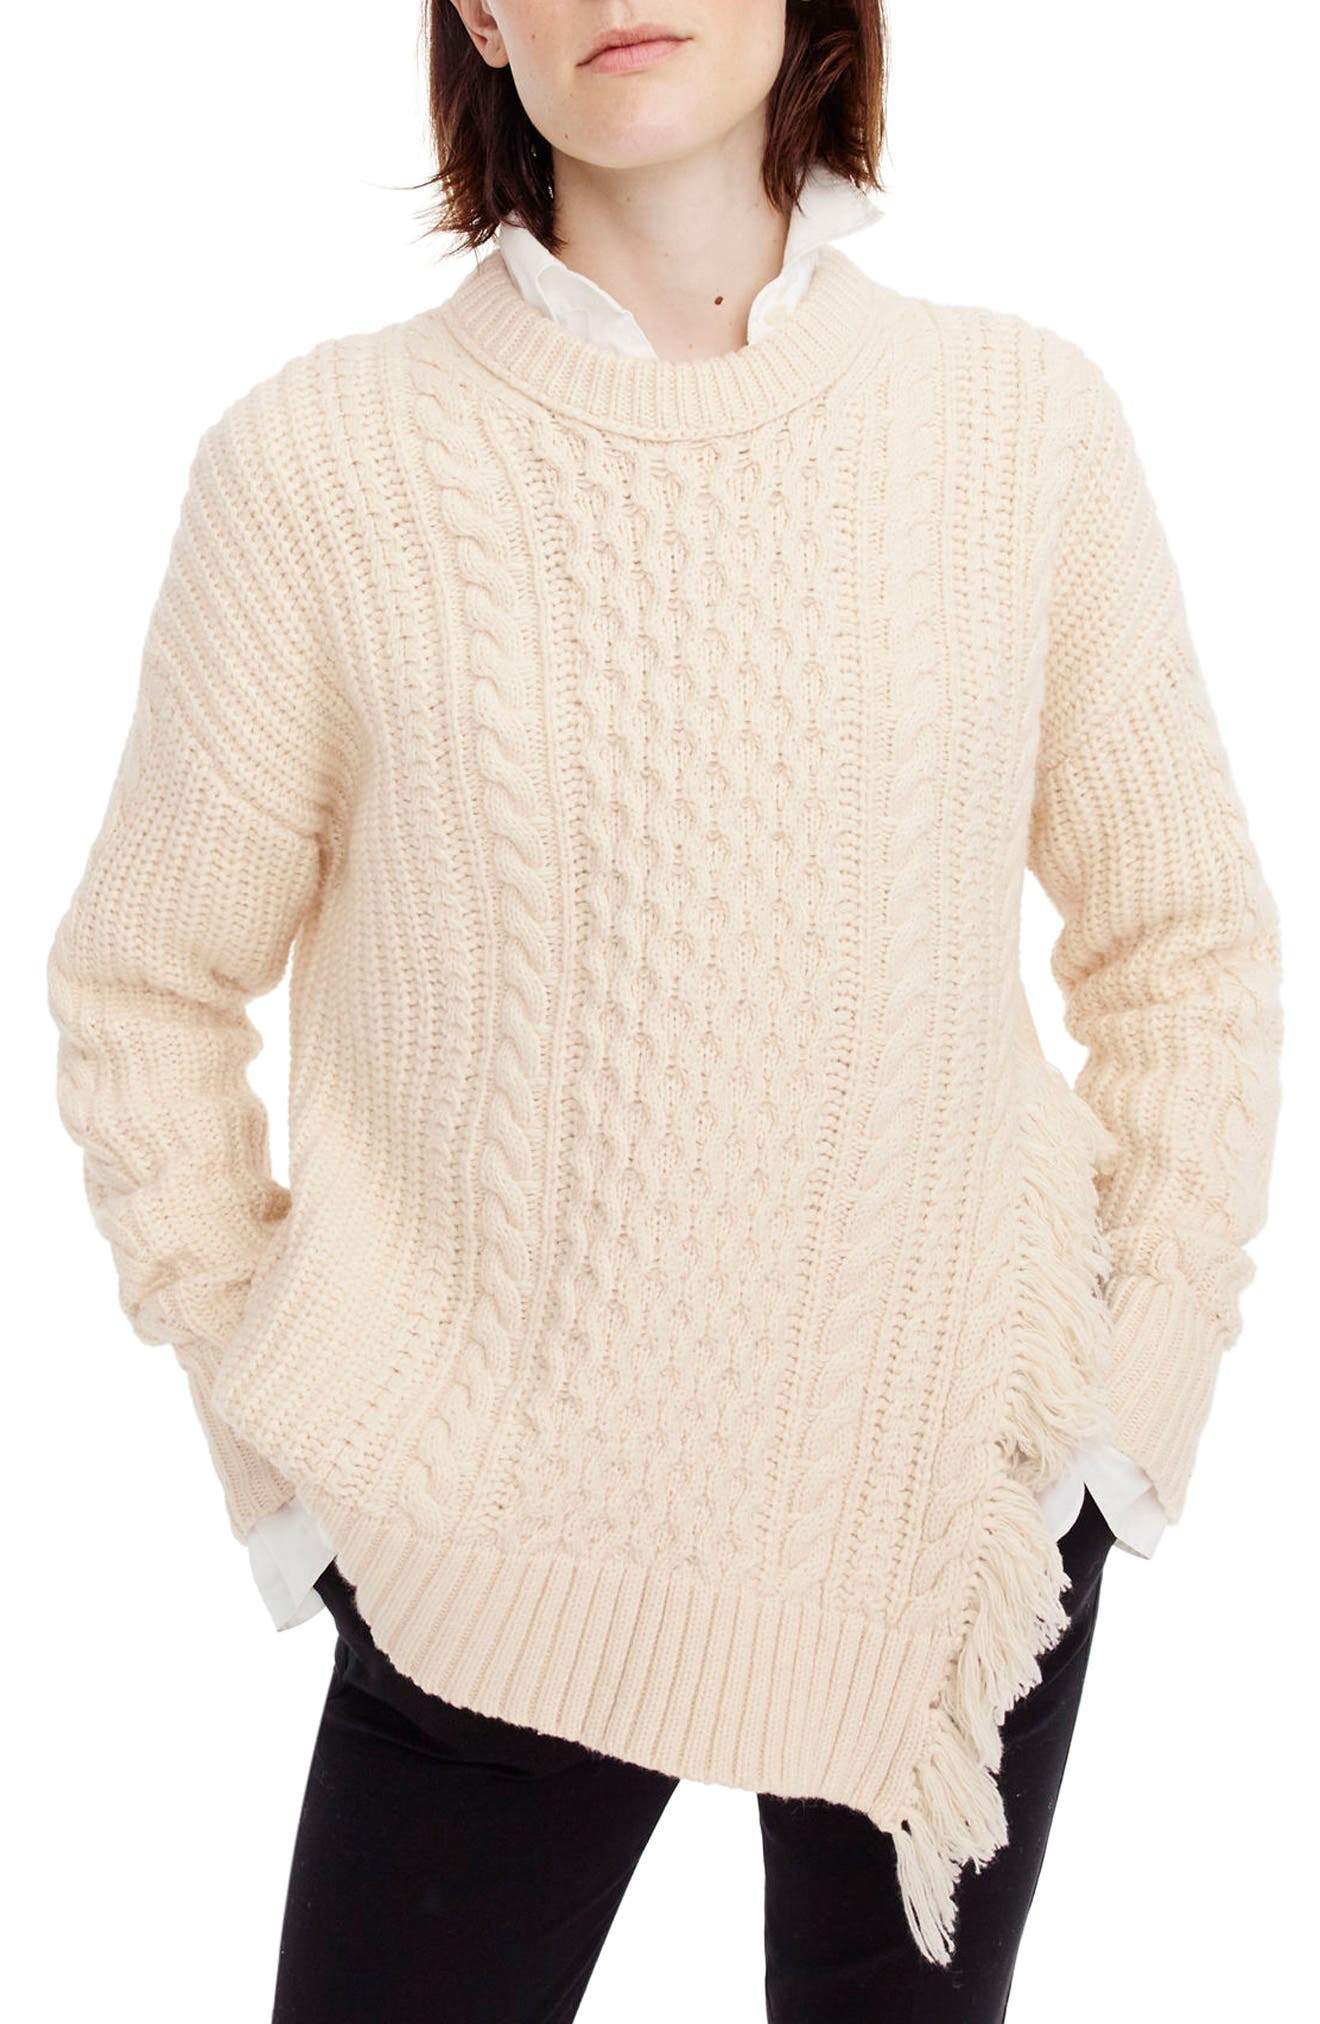 J.Crew Fringe Detail Cable Knit Sweater,                         Main,                         color, Ivory